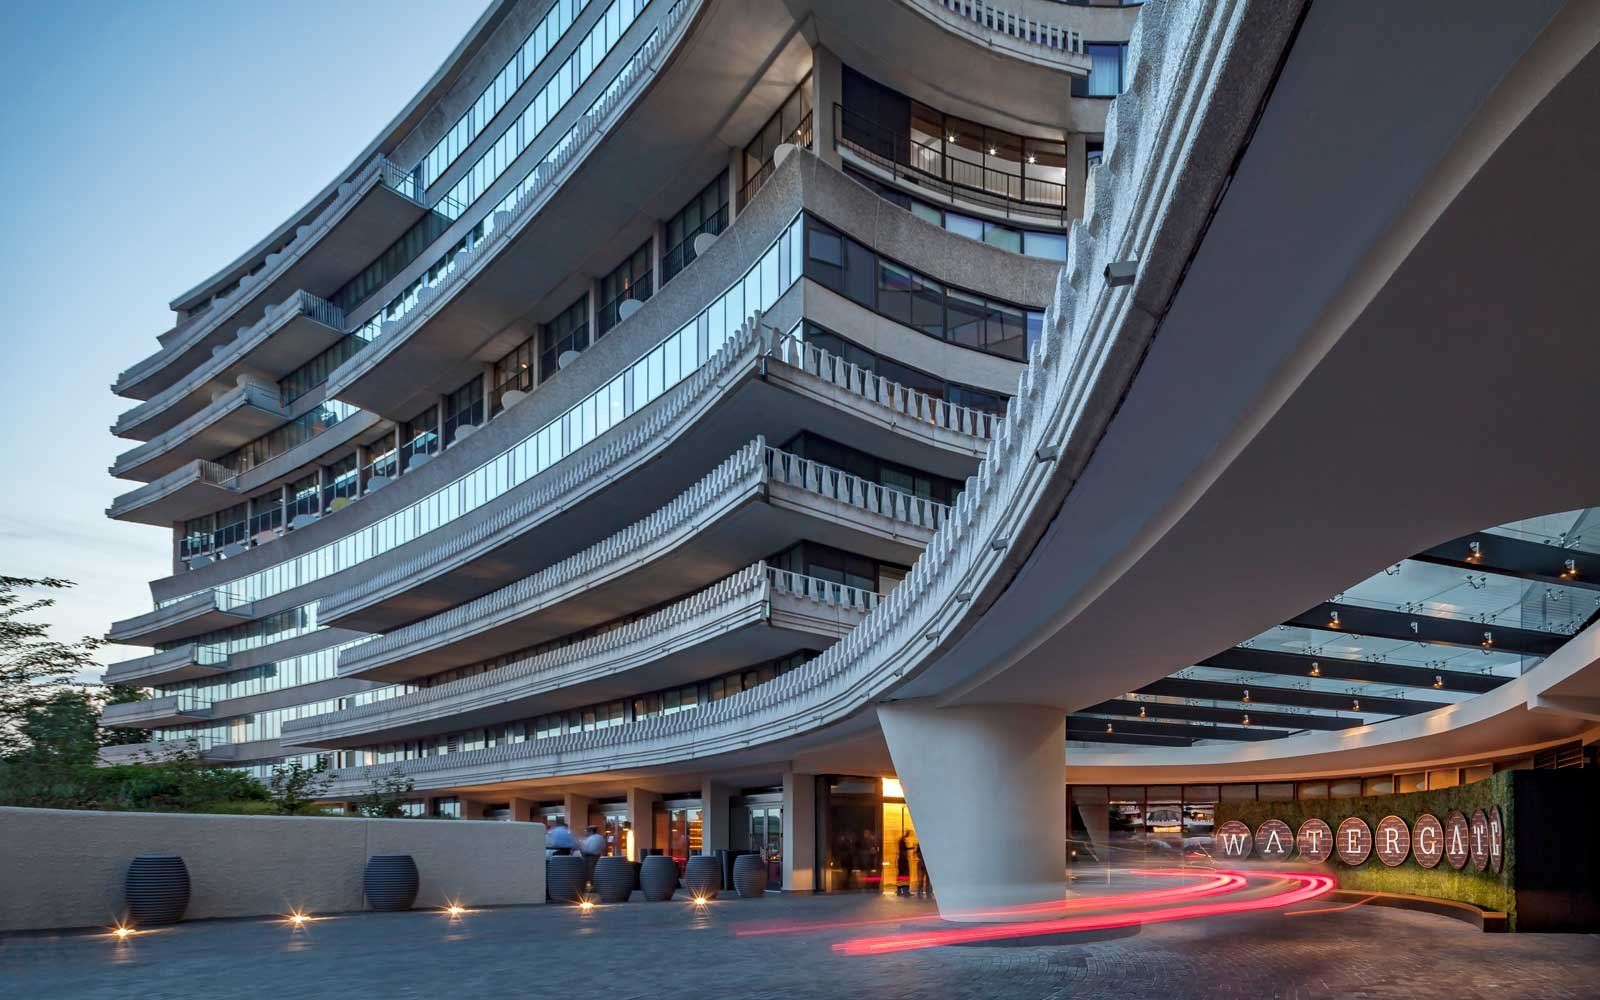 Exterior of the infamous Watergate hotel, in Washington DC